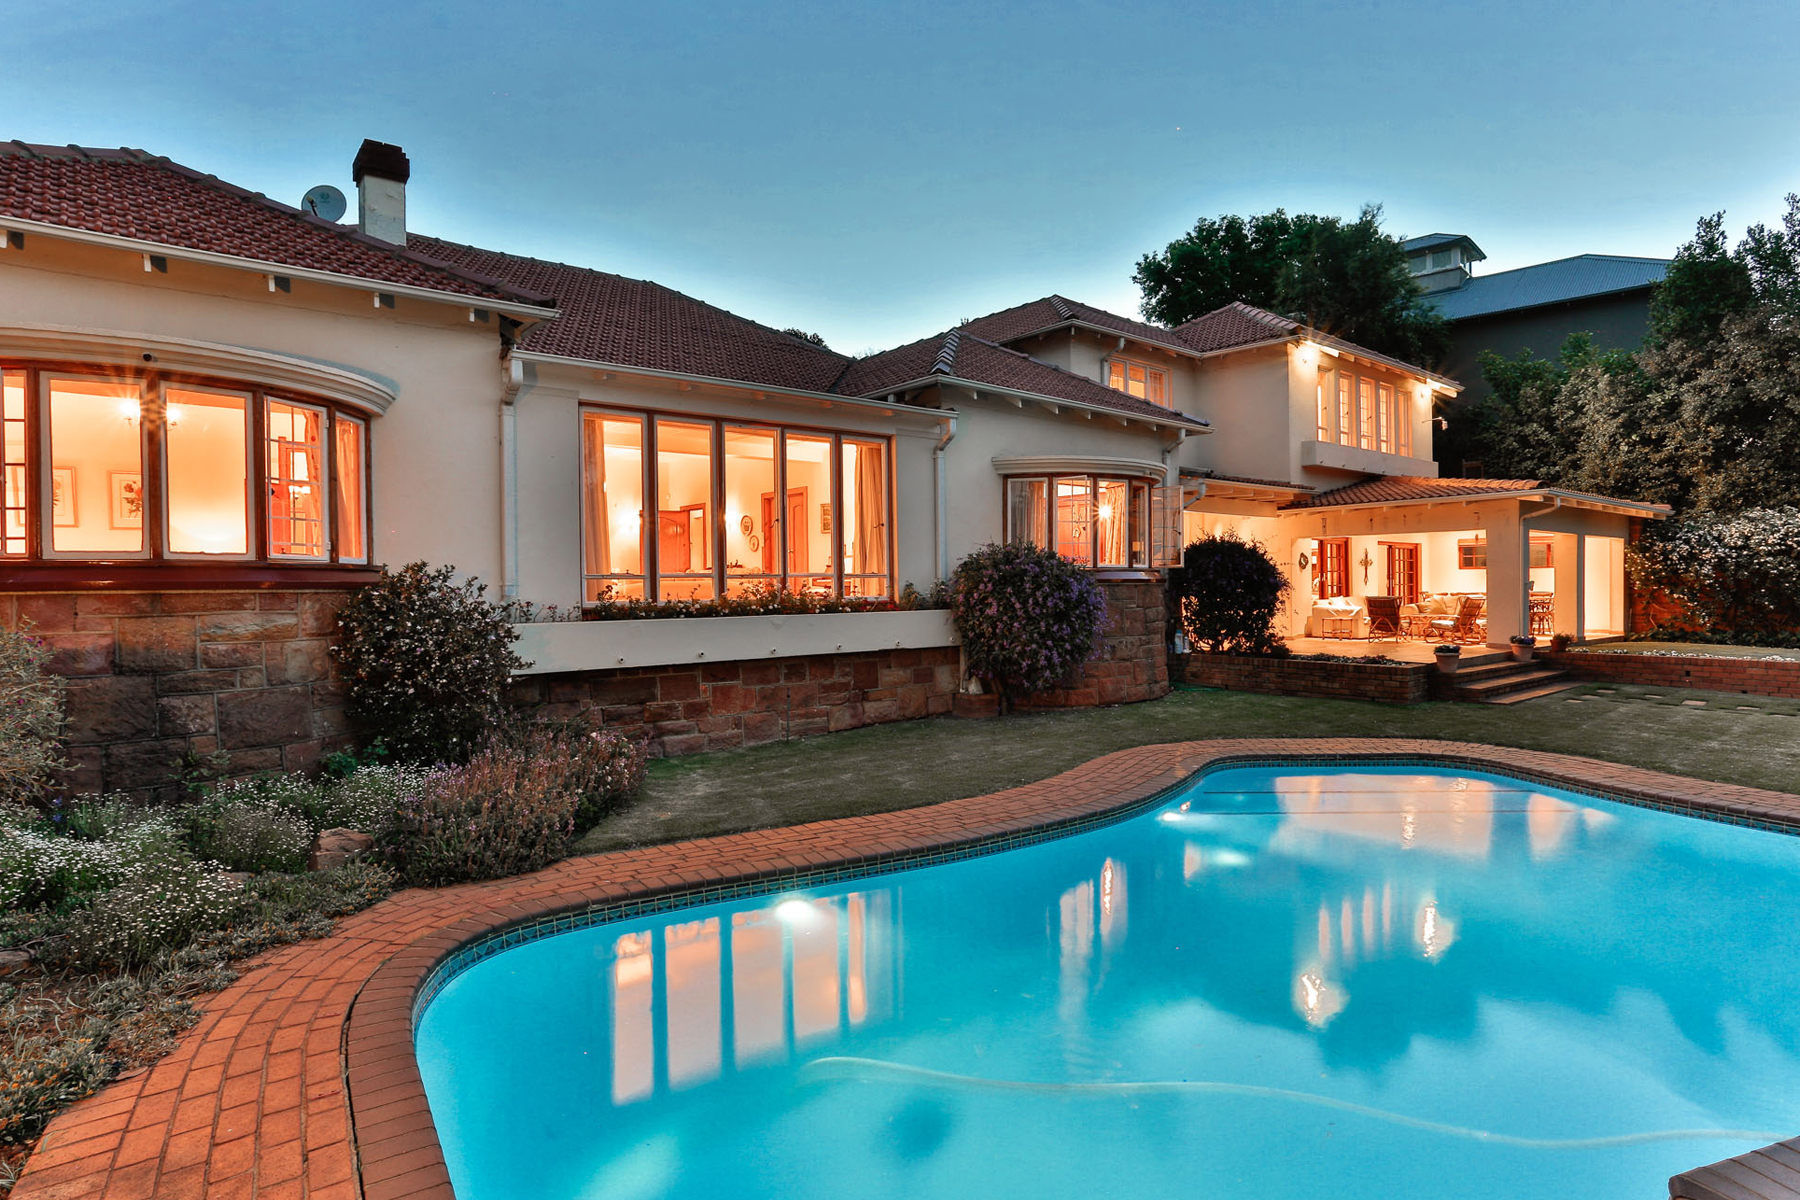 Single Family Home for Sale at Westcliff 6 Westcliff Dtive, Johannesburg, Gauteng, 2193 South Africa